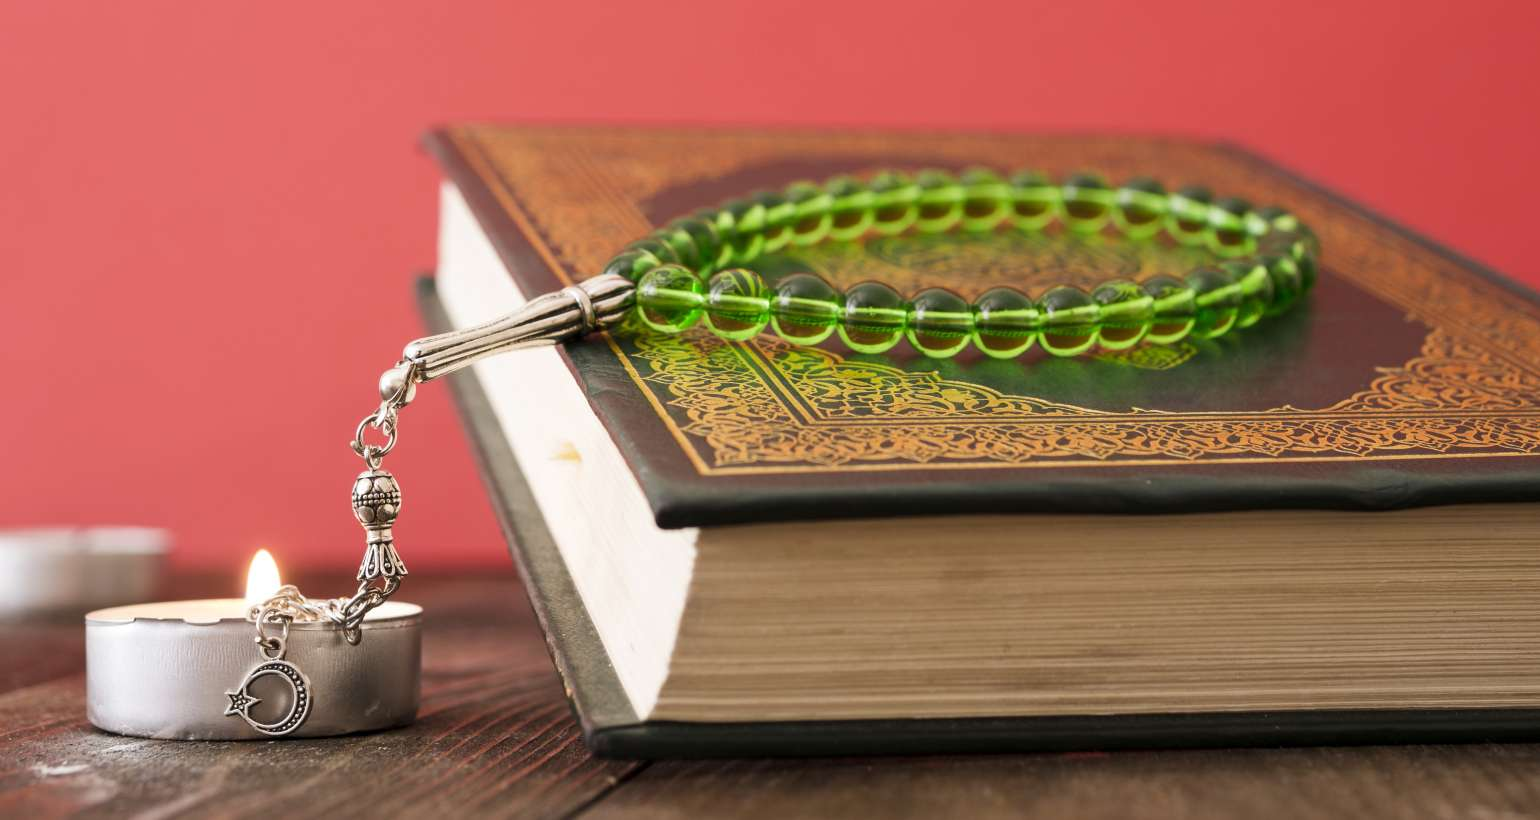 online quran learning vs mosque